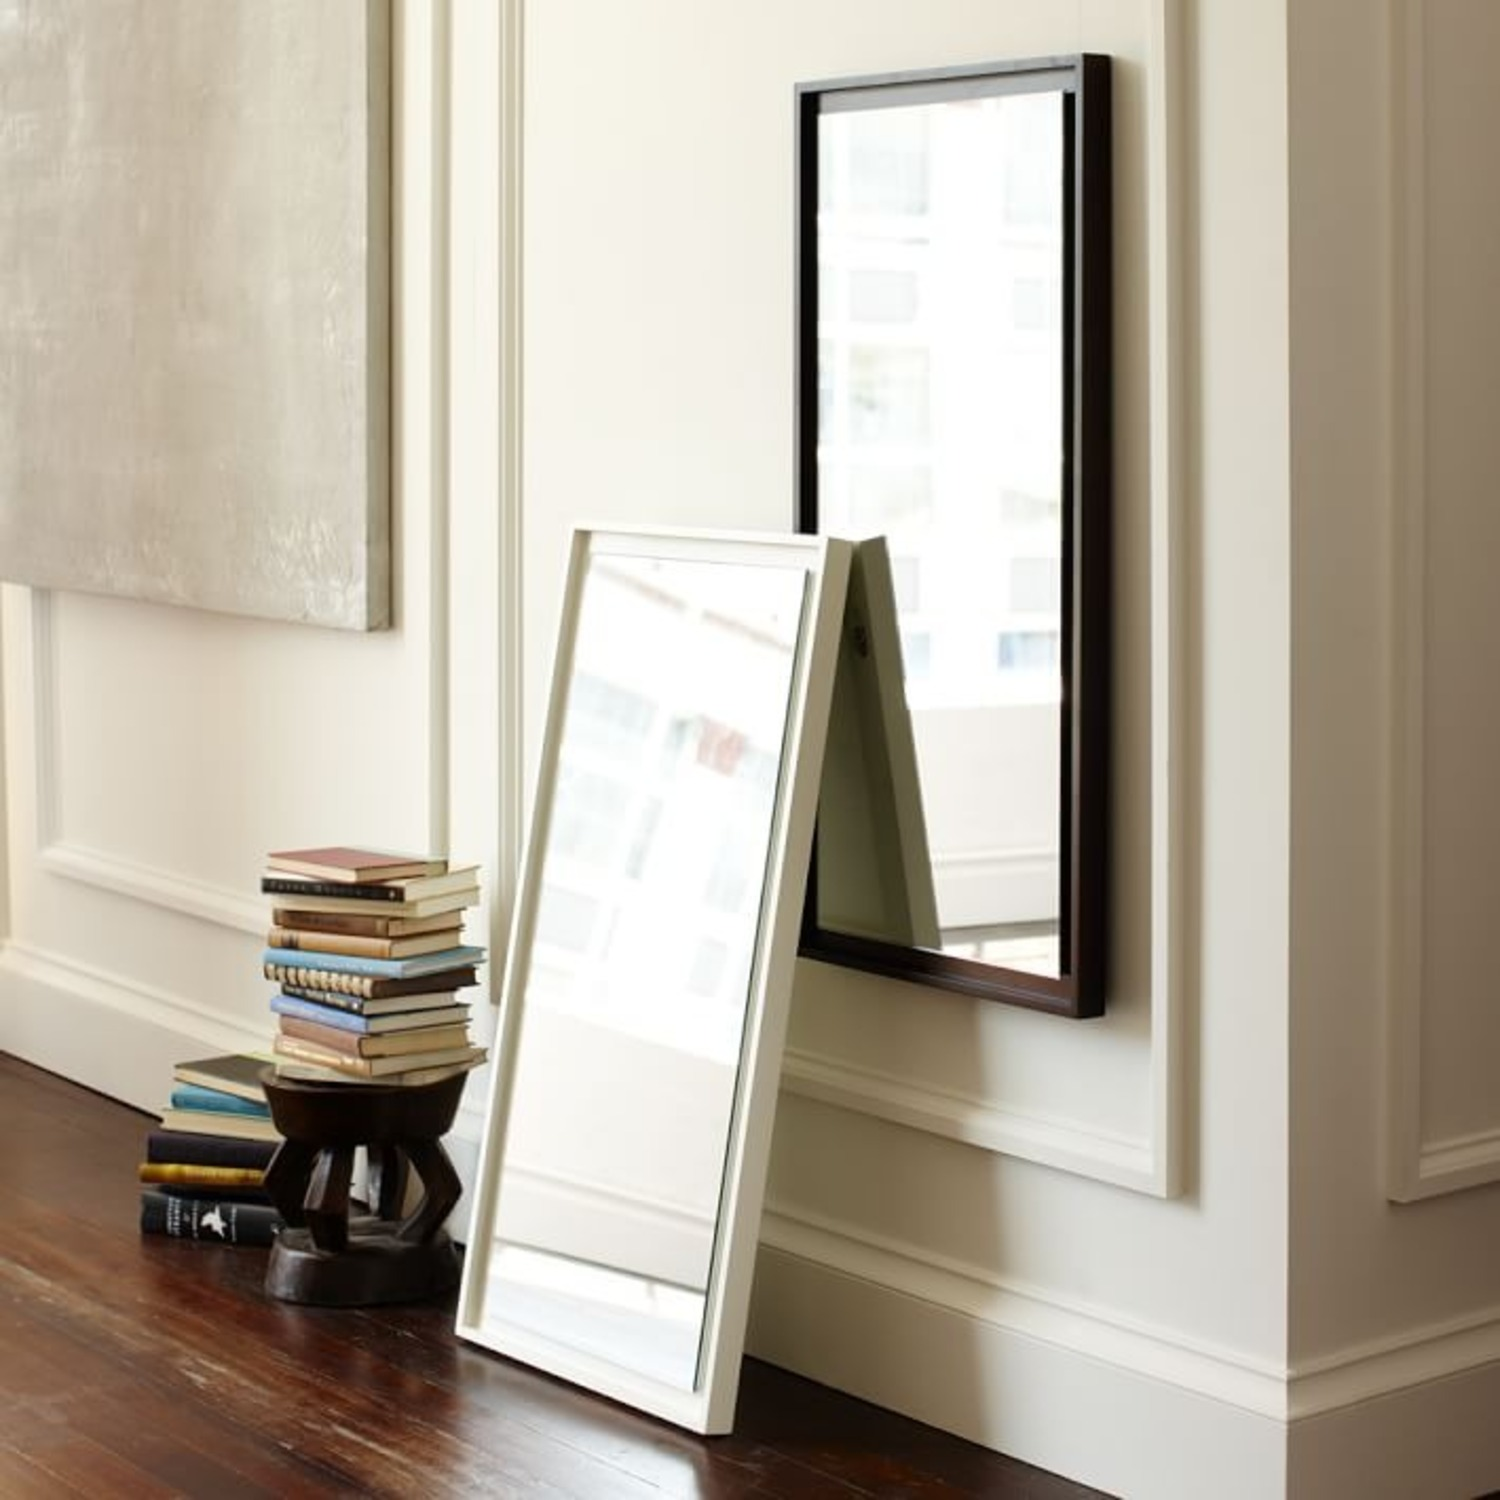 West Elm Floating Wood Wall Mirror, White Lacquer - image-0